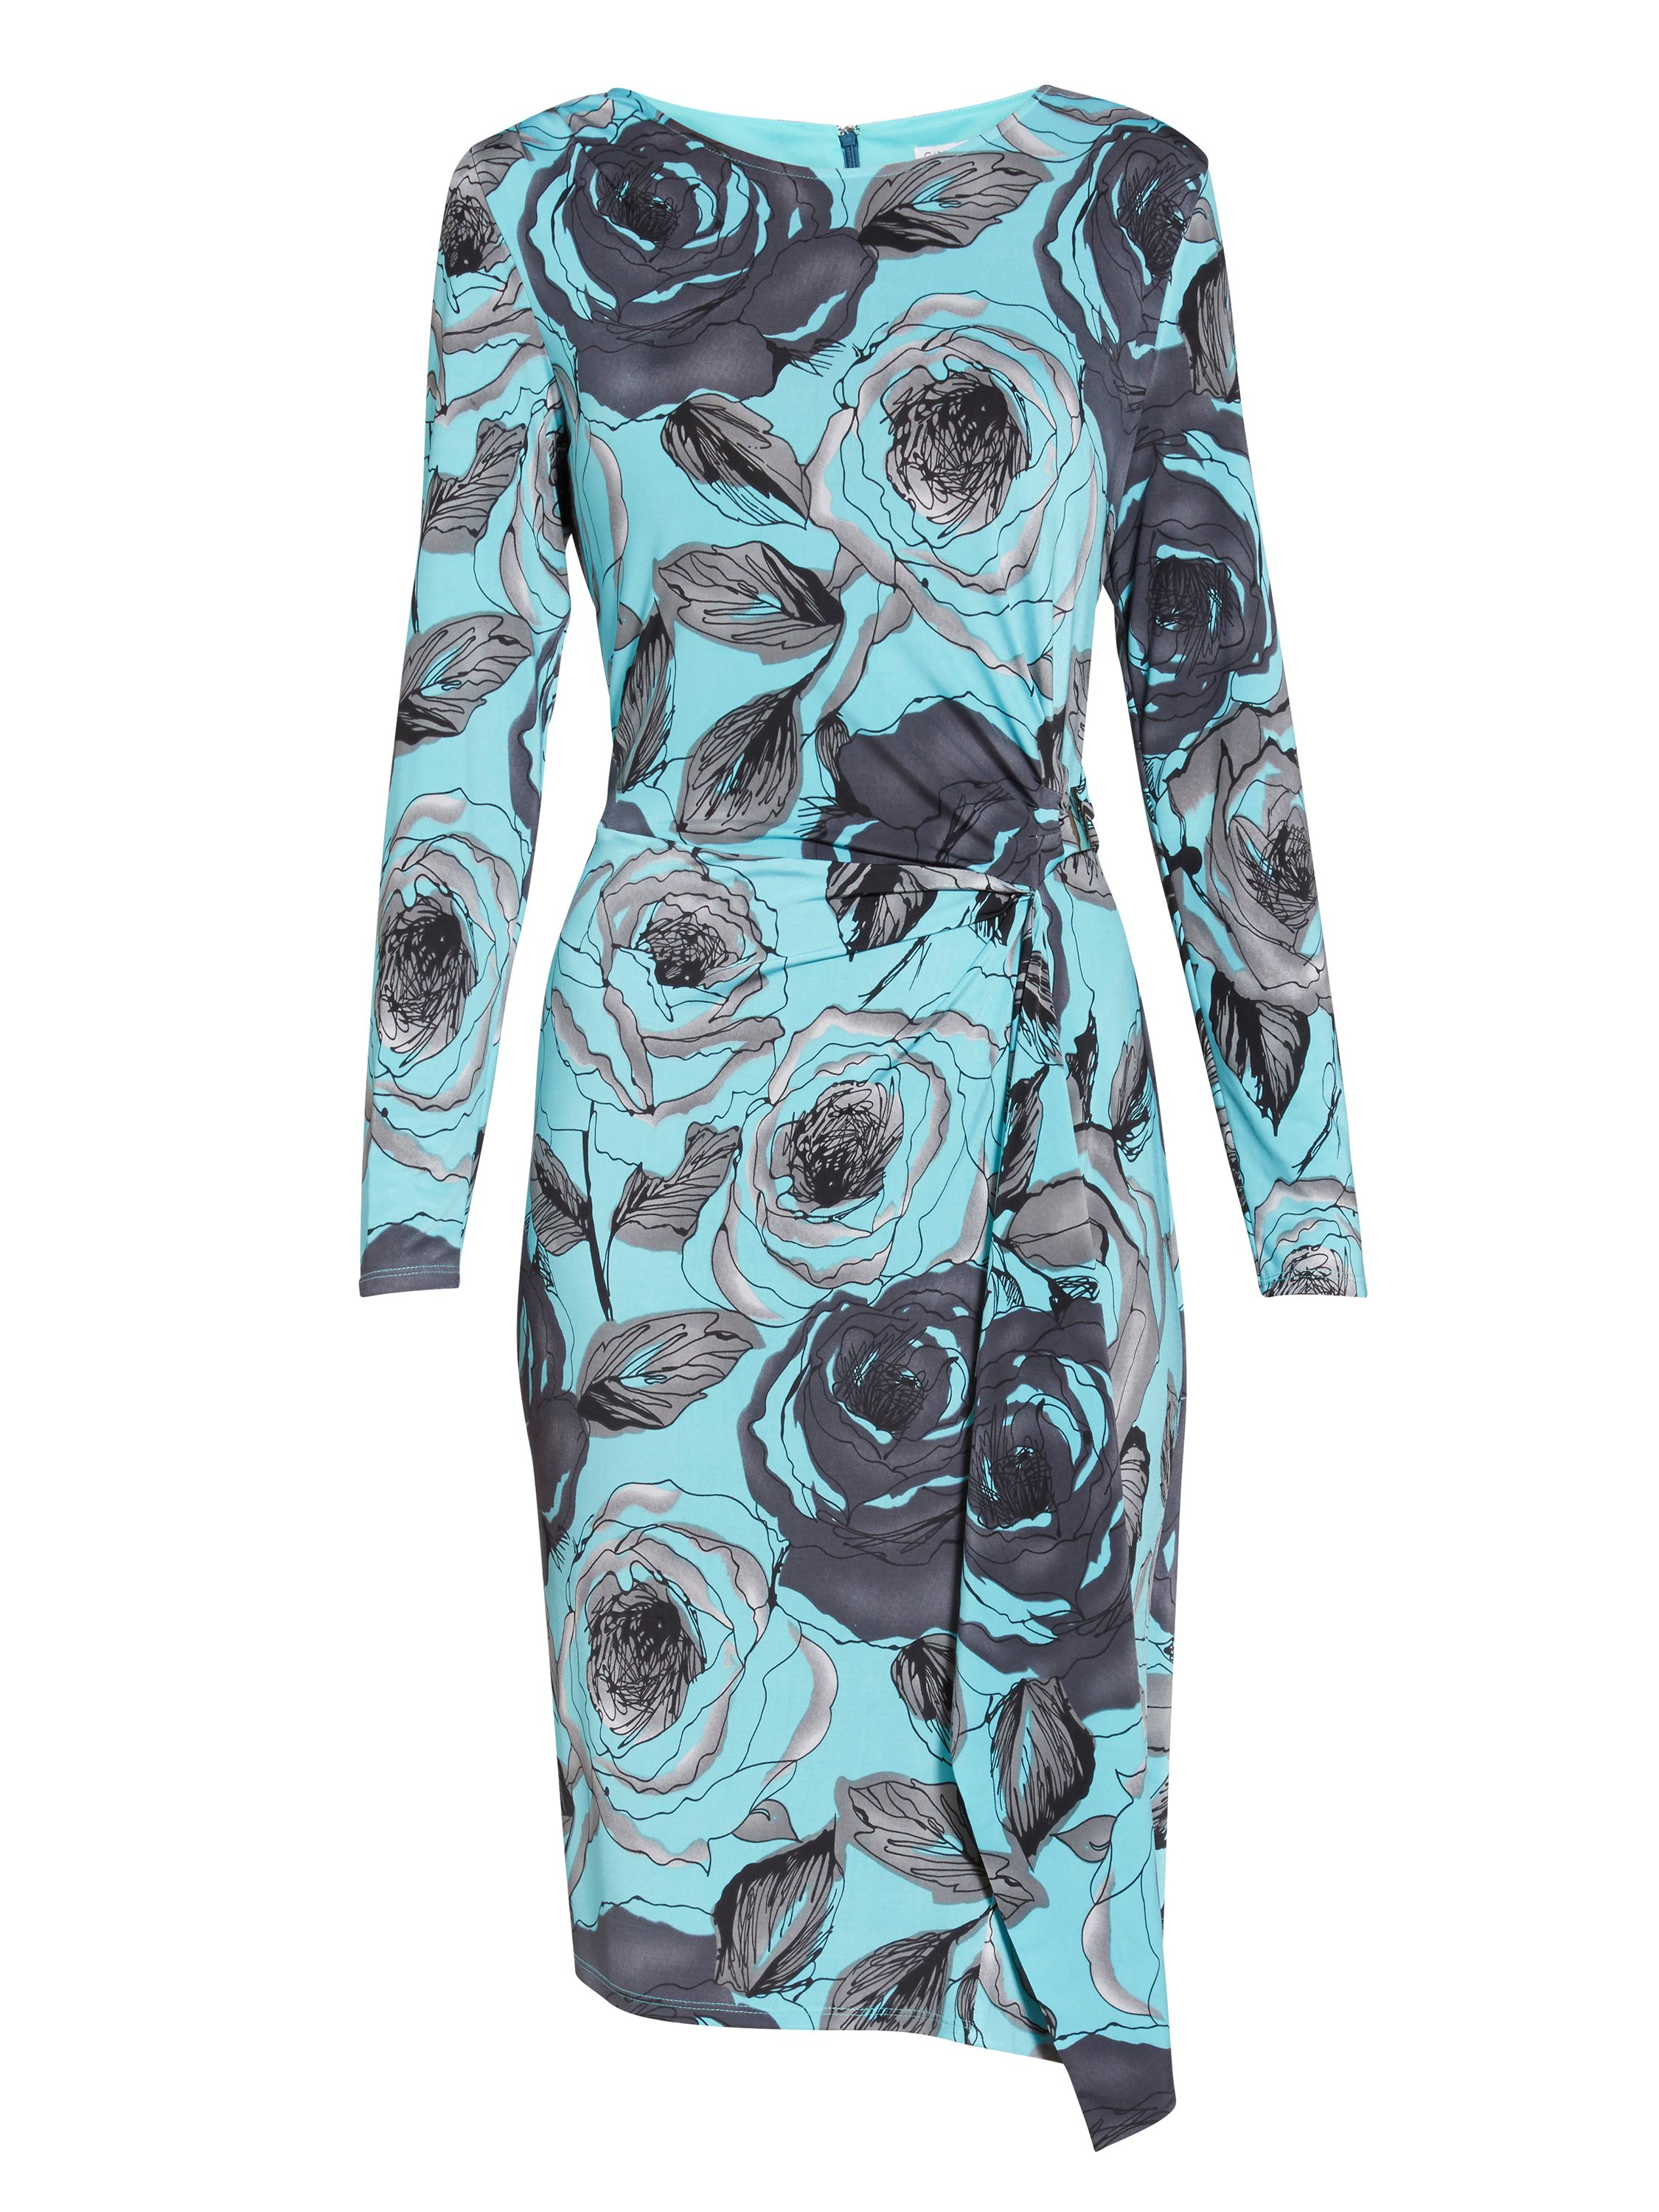 Gina Bacconi Turq Grey Floral Print Jersey Dress, Multi-Coloured